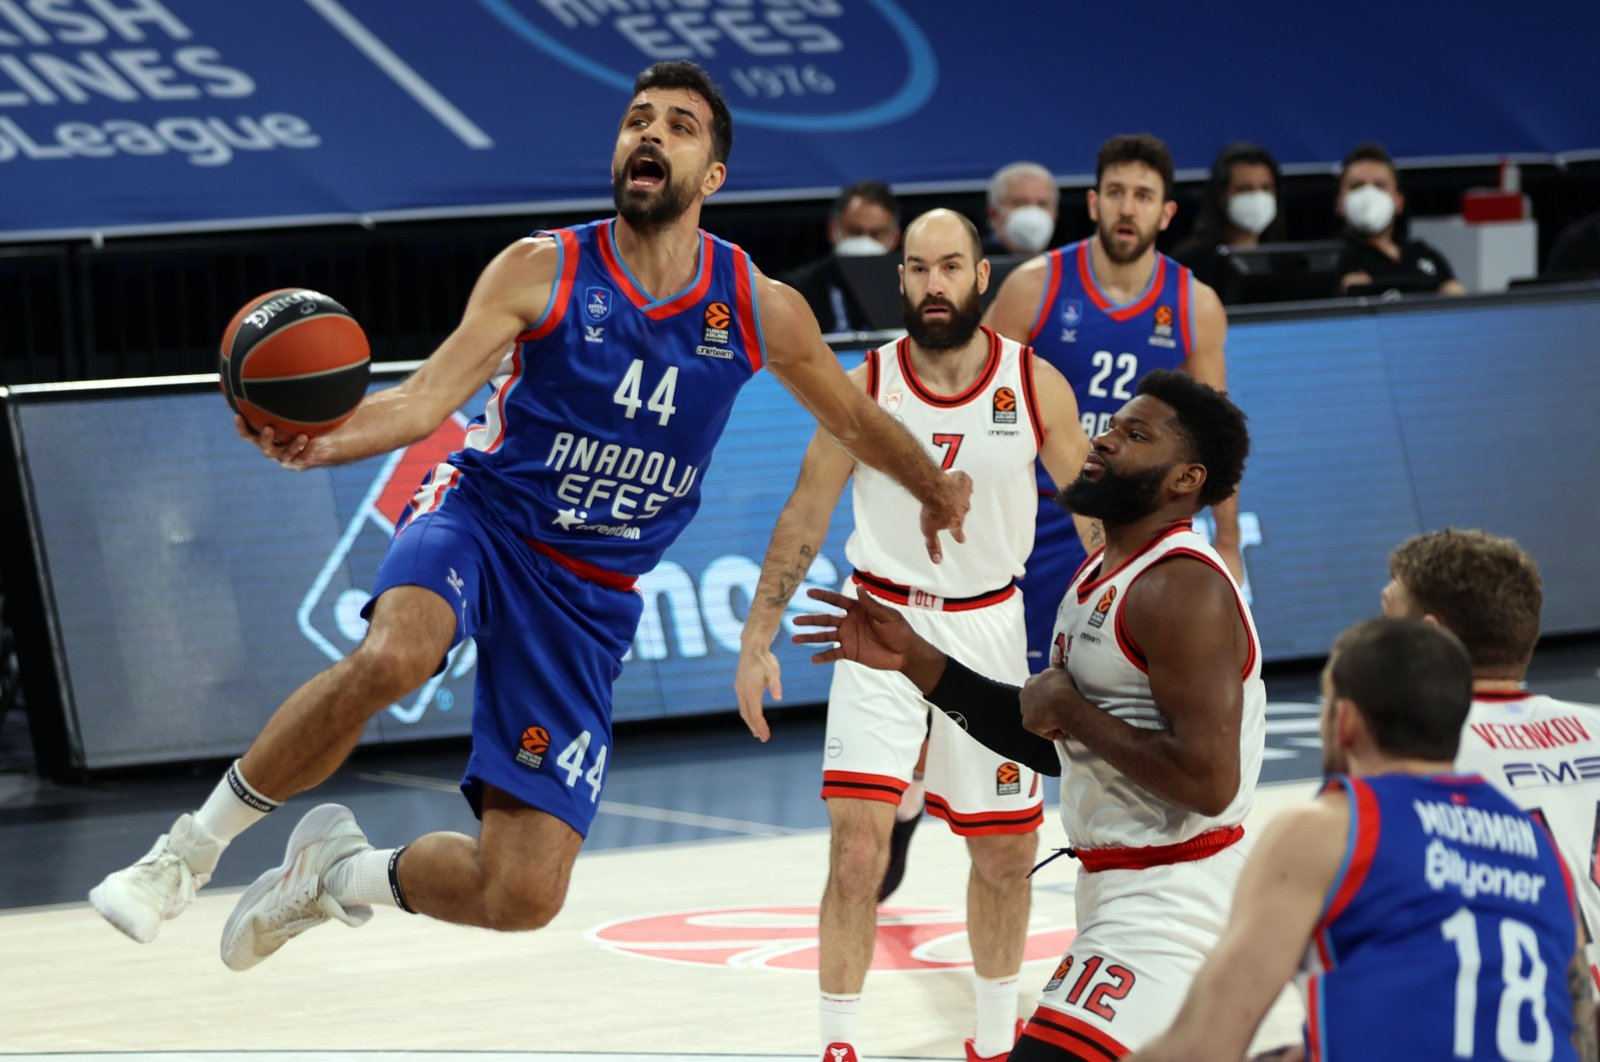 Anadolu Efes' Krunoslav Simon (L) jumps to score as Olympiacos' Hassan Martin (R) looks on in their EuroLeague Round 25 match at the Sinan Erdem Sports Center, Istanbul, Turkey, Feb. 18, 2021. (AA Photo)